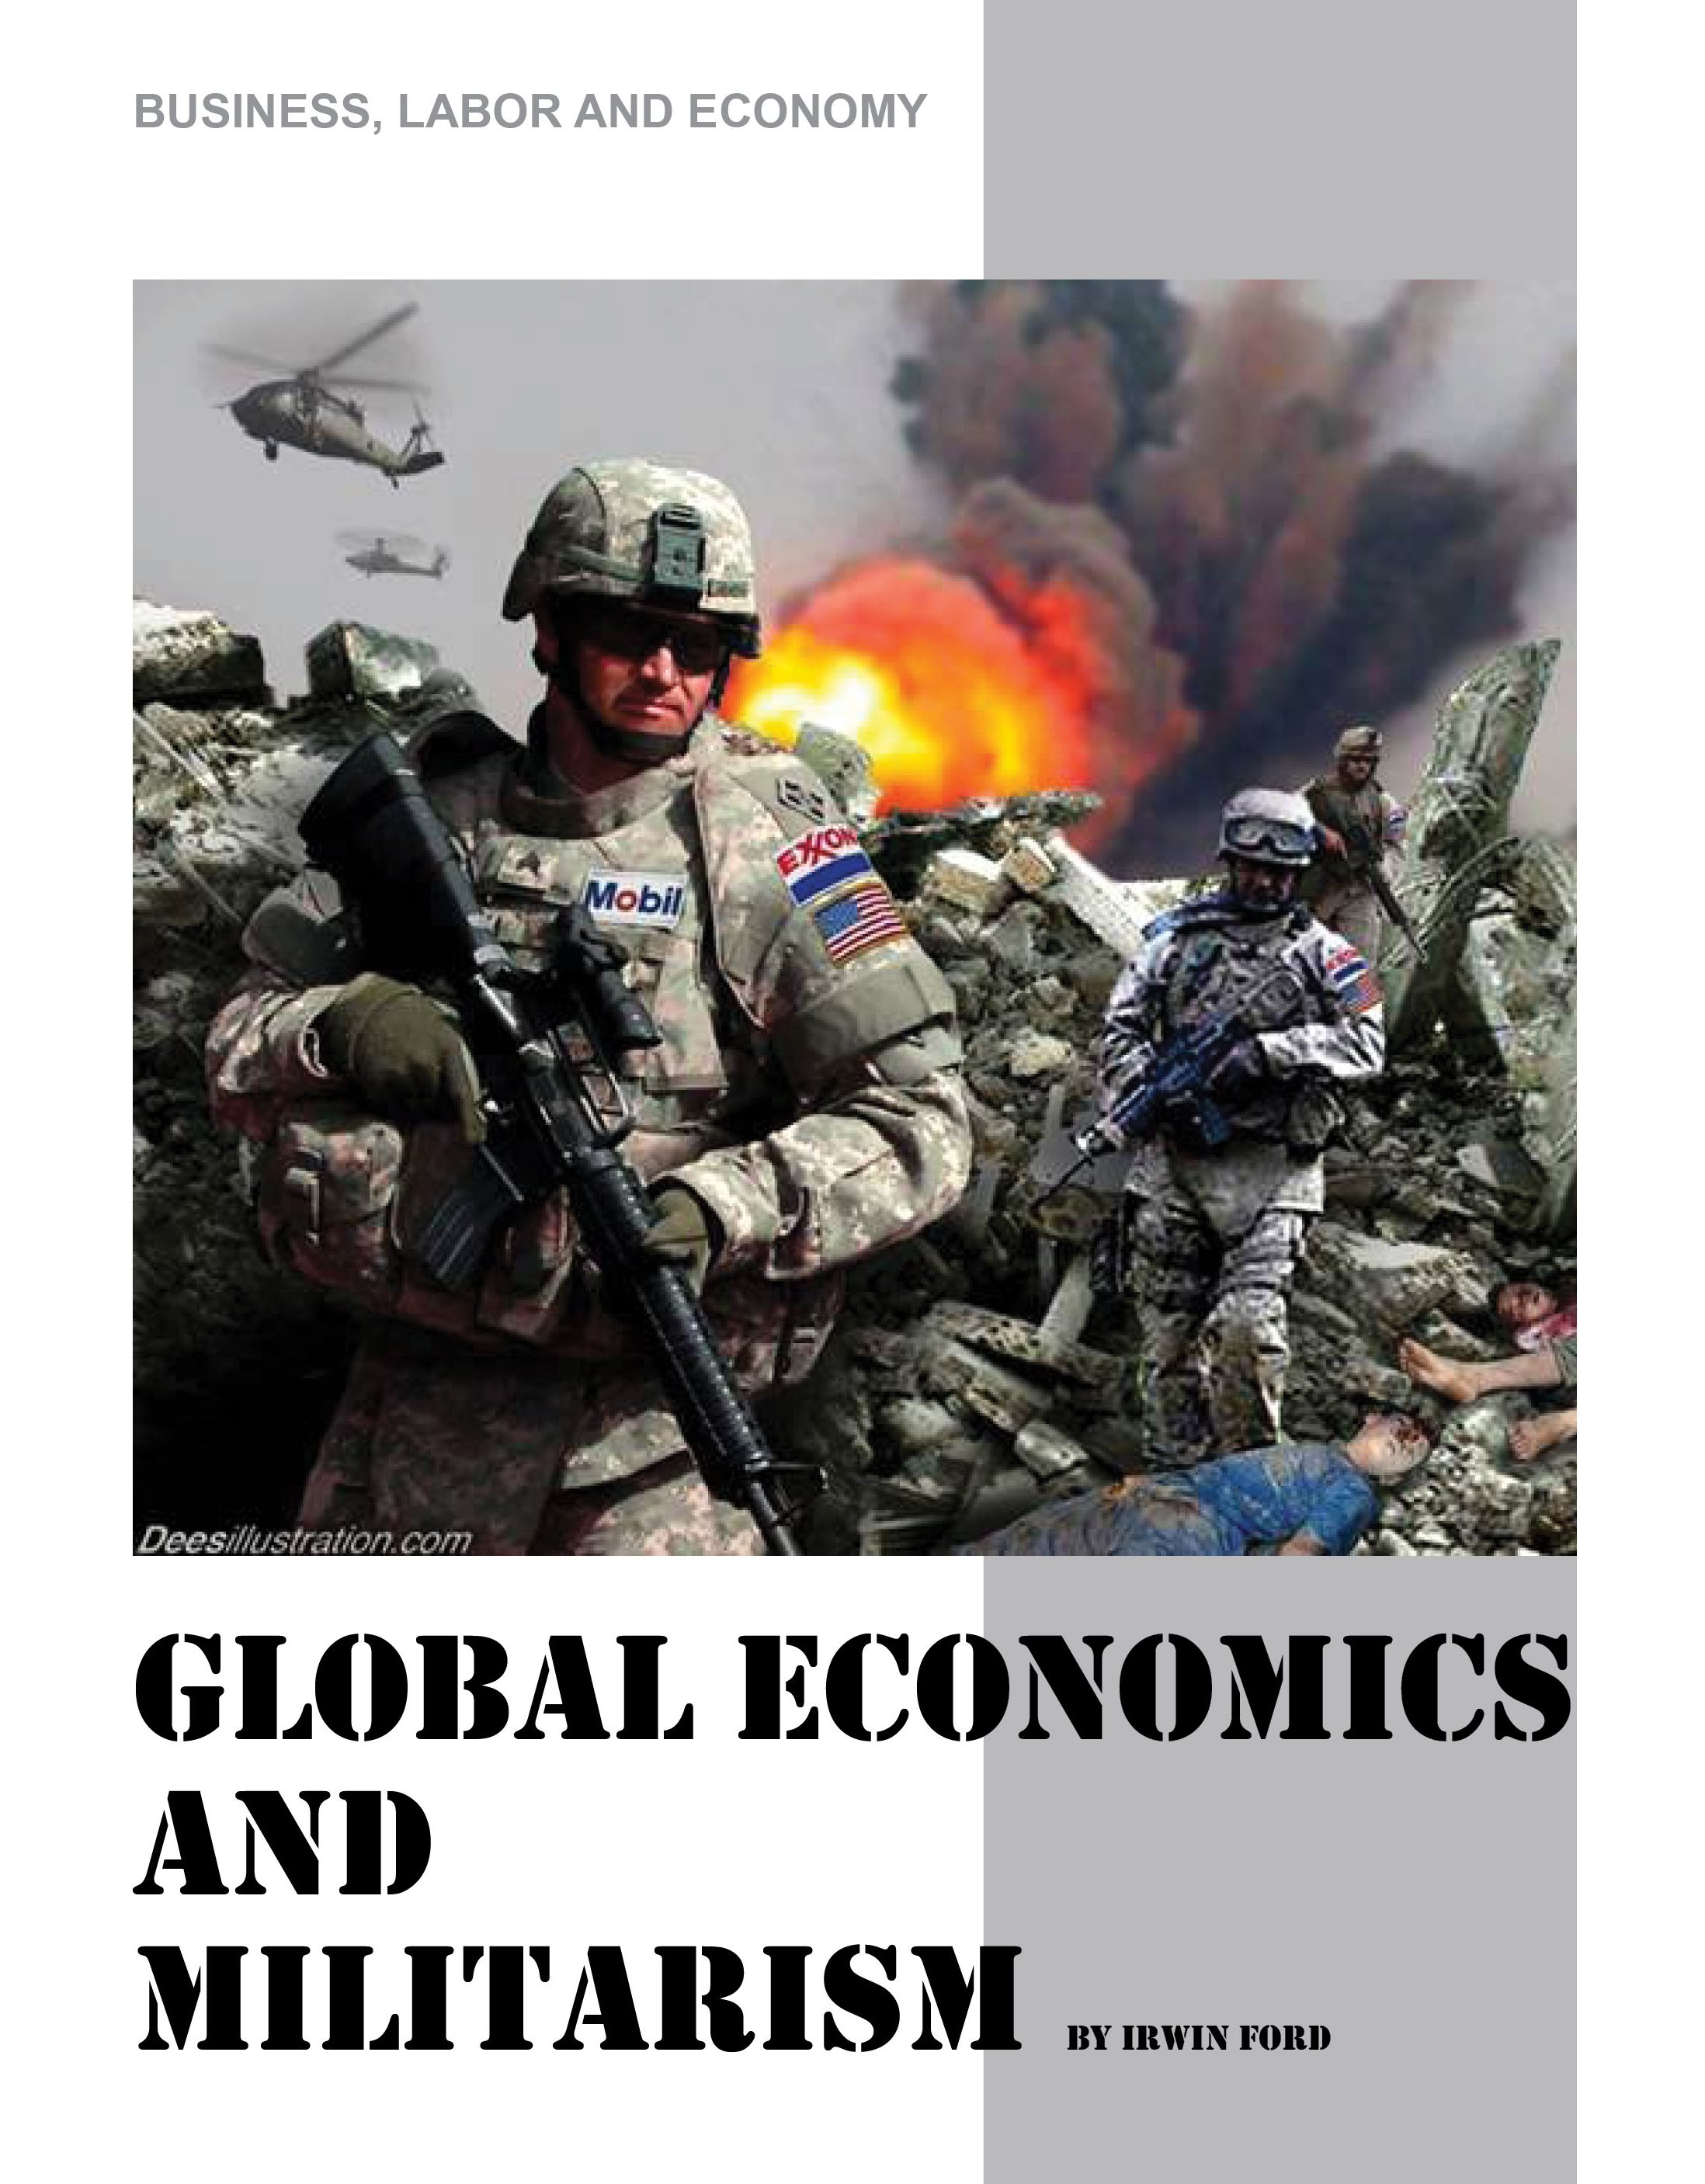 Global Economics and Militarism